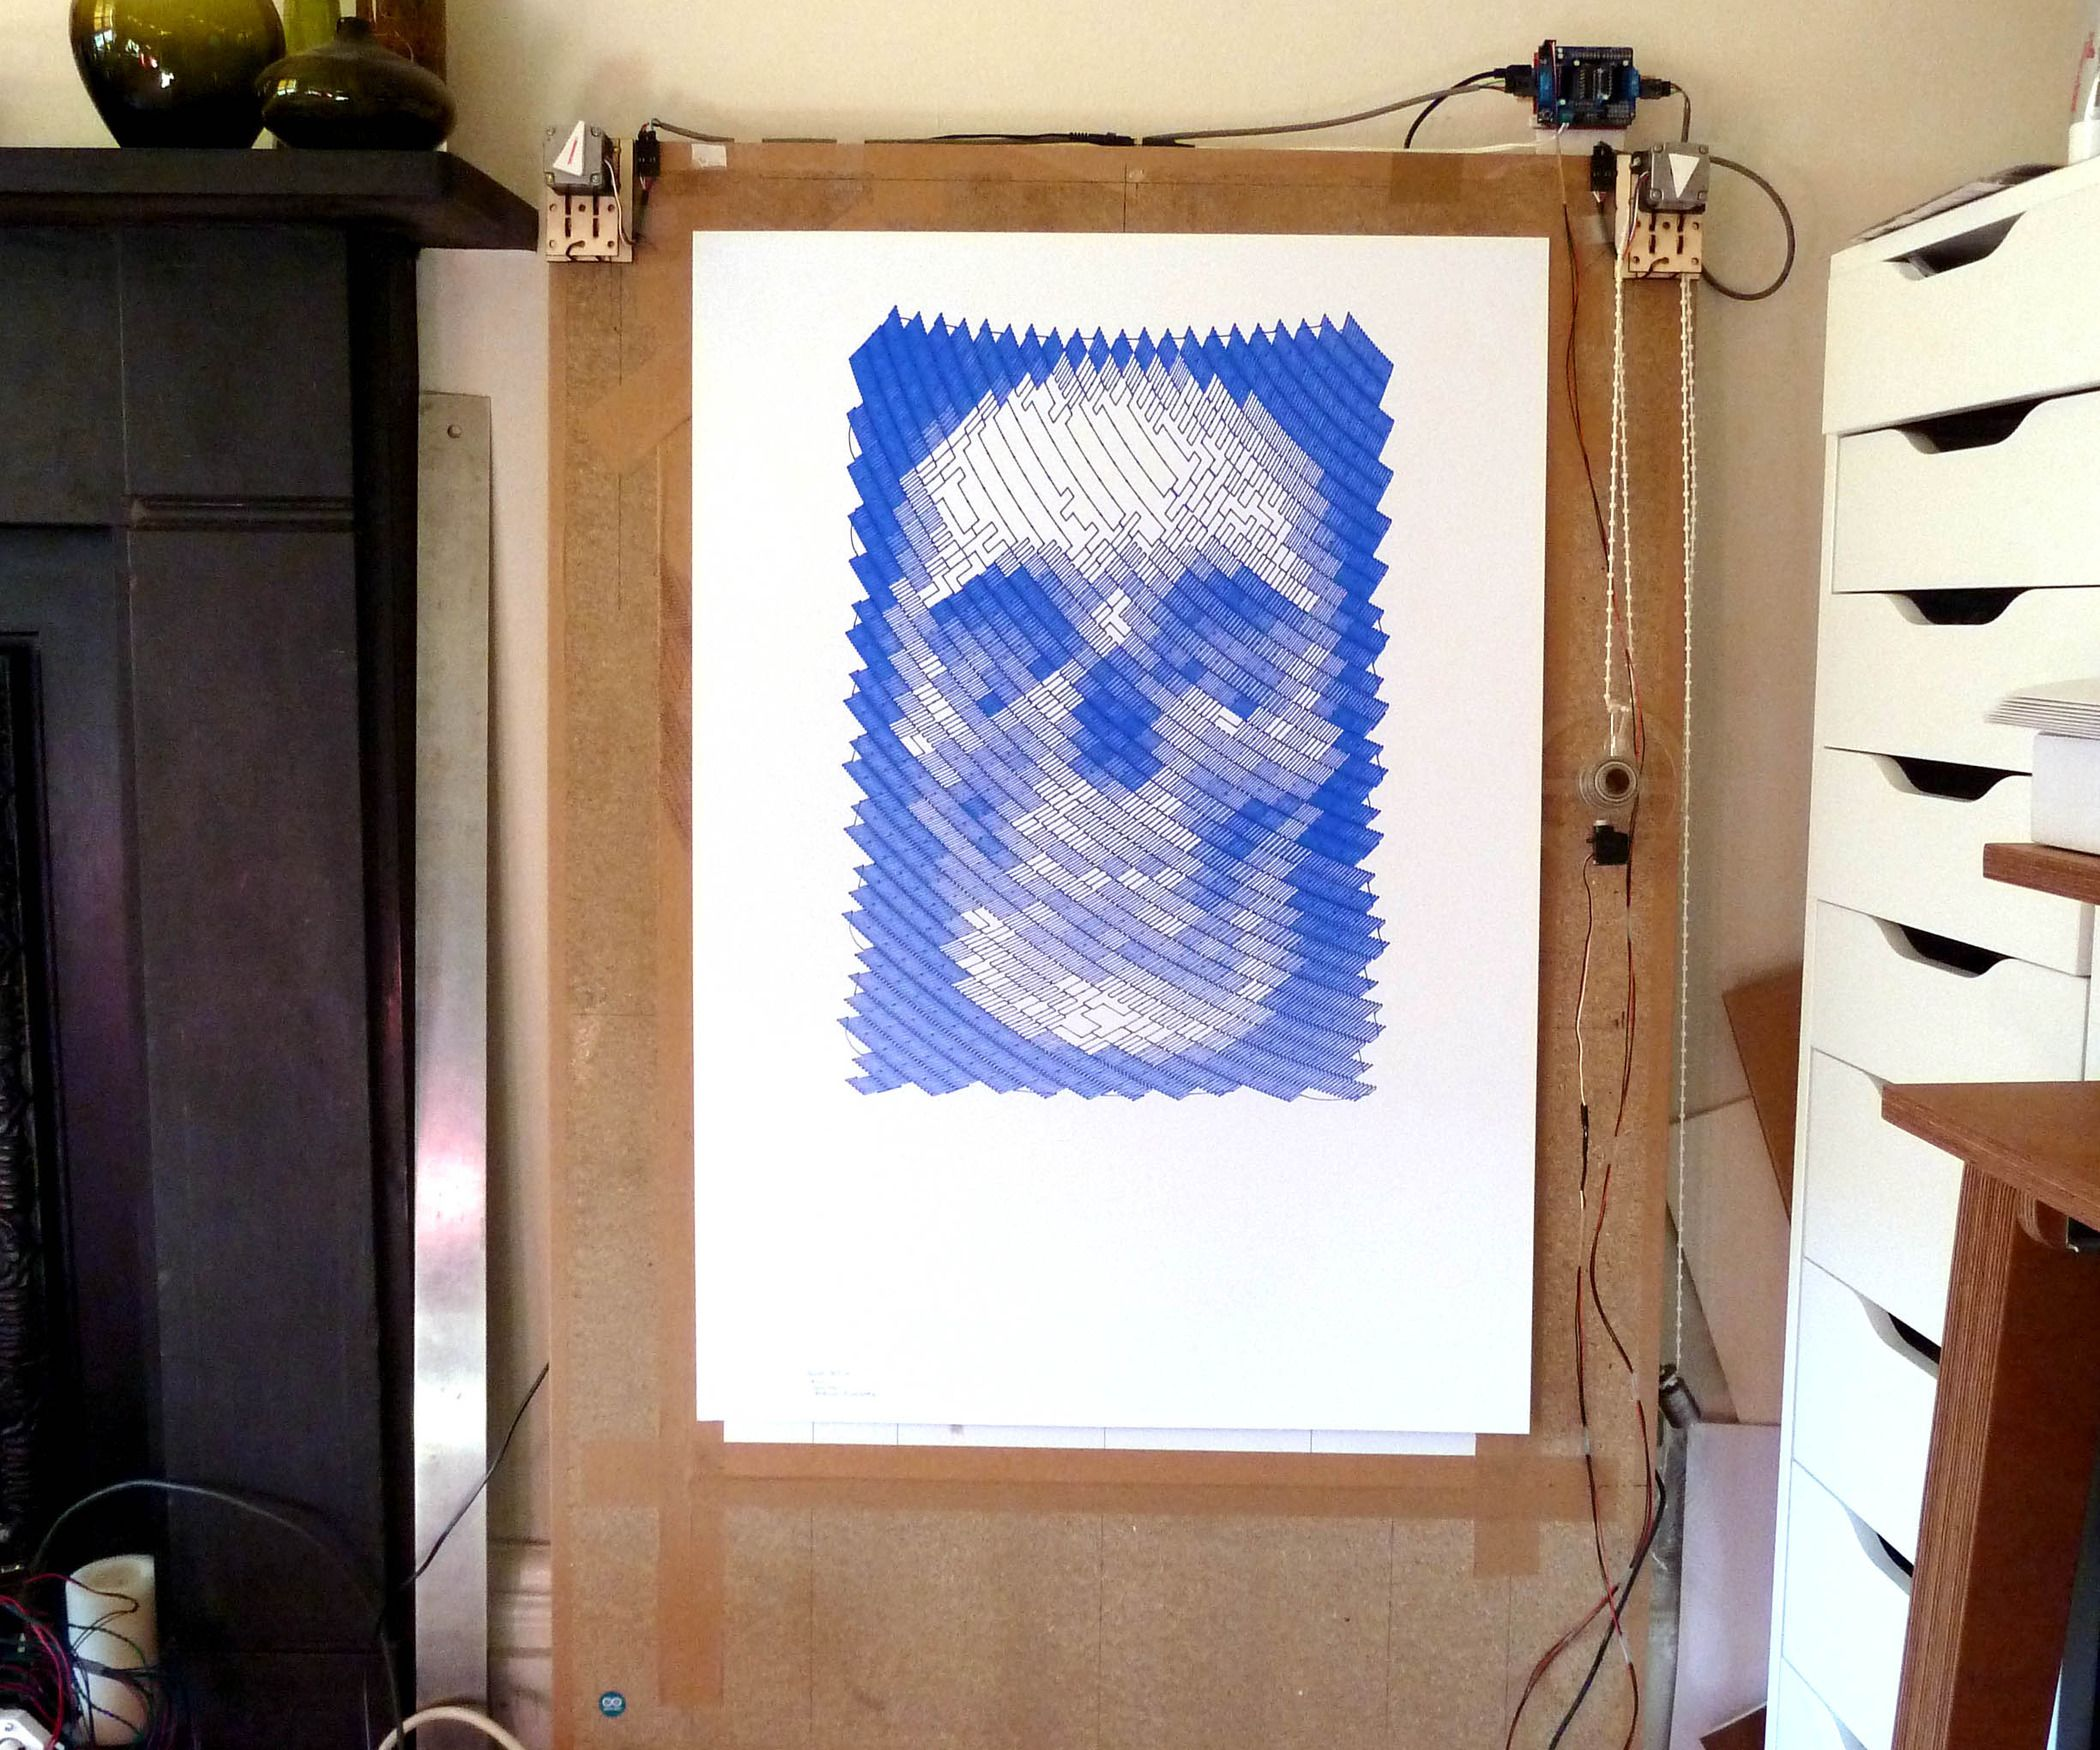 This machine, a variation on the hanging-pen plotter is a conspicuous and wilfully naive attempt to break out of the pristine, pixel perfect, colour-c...